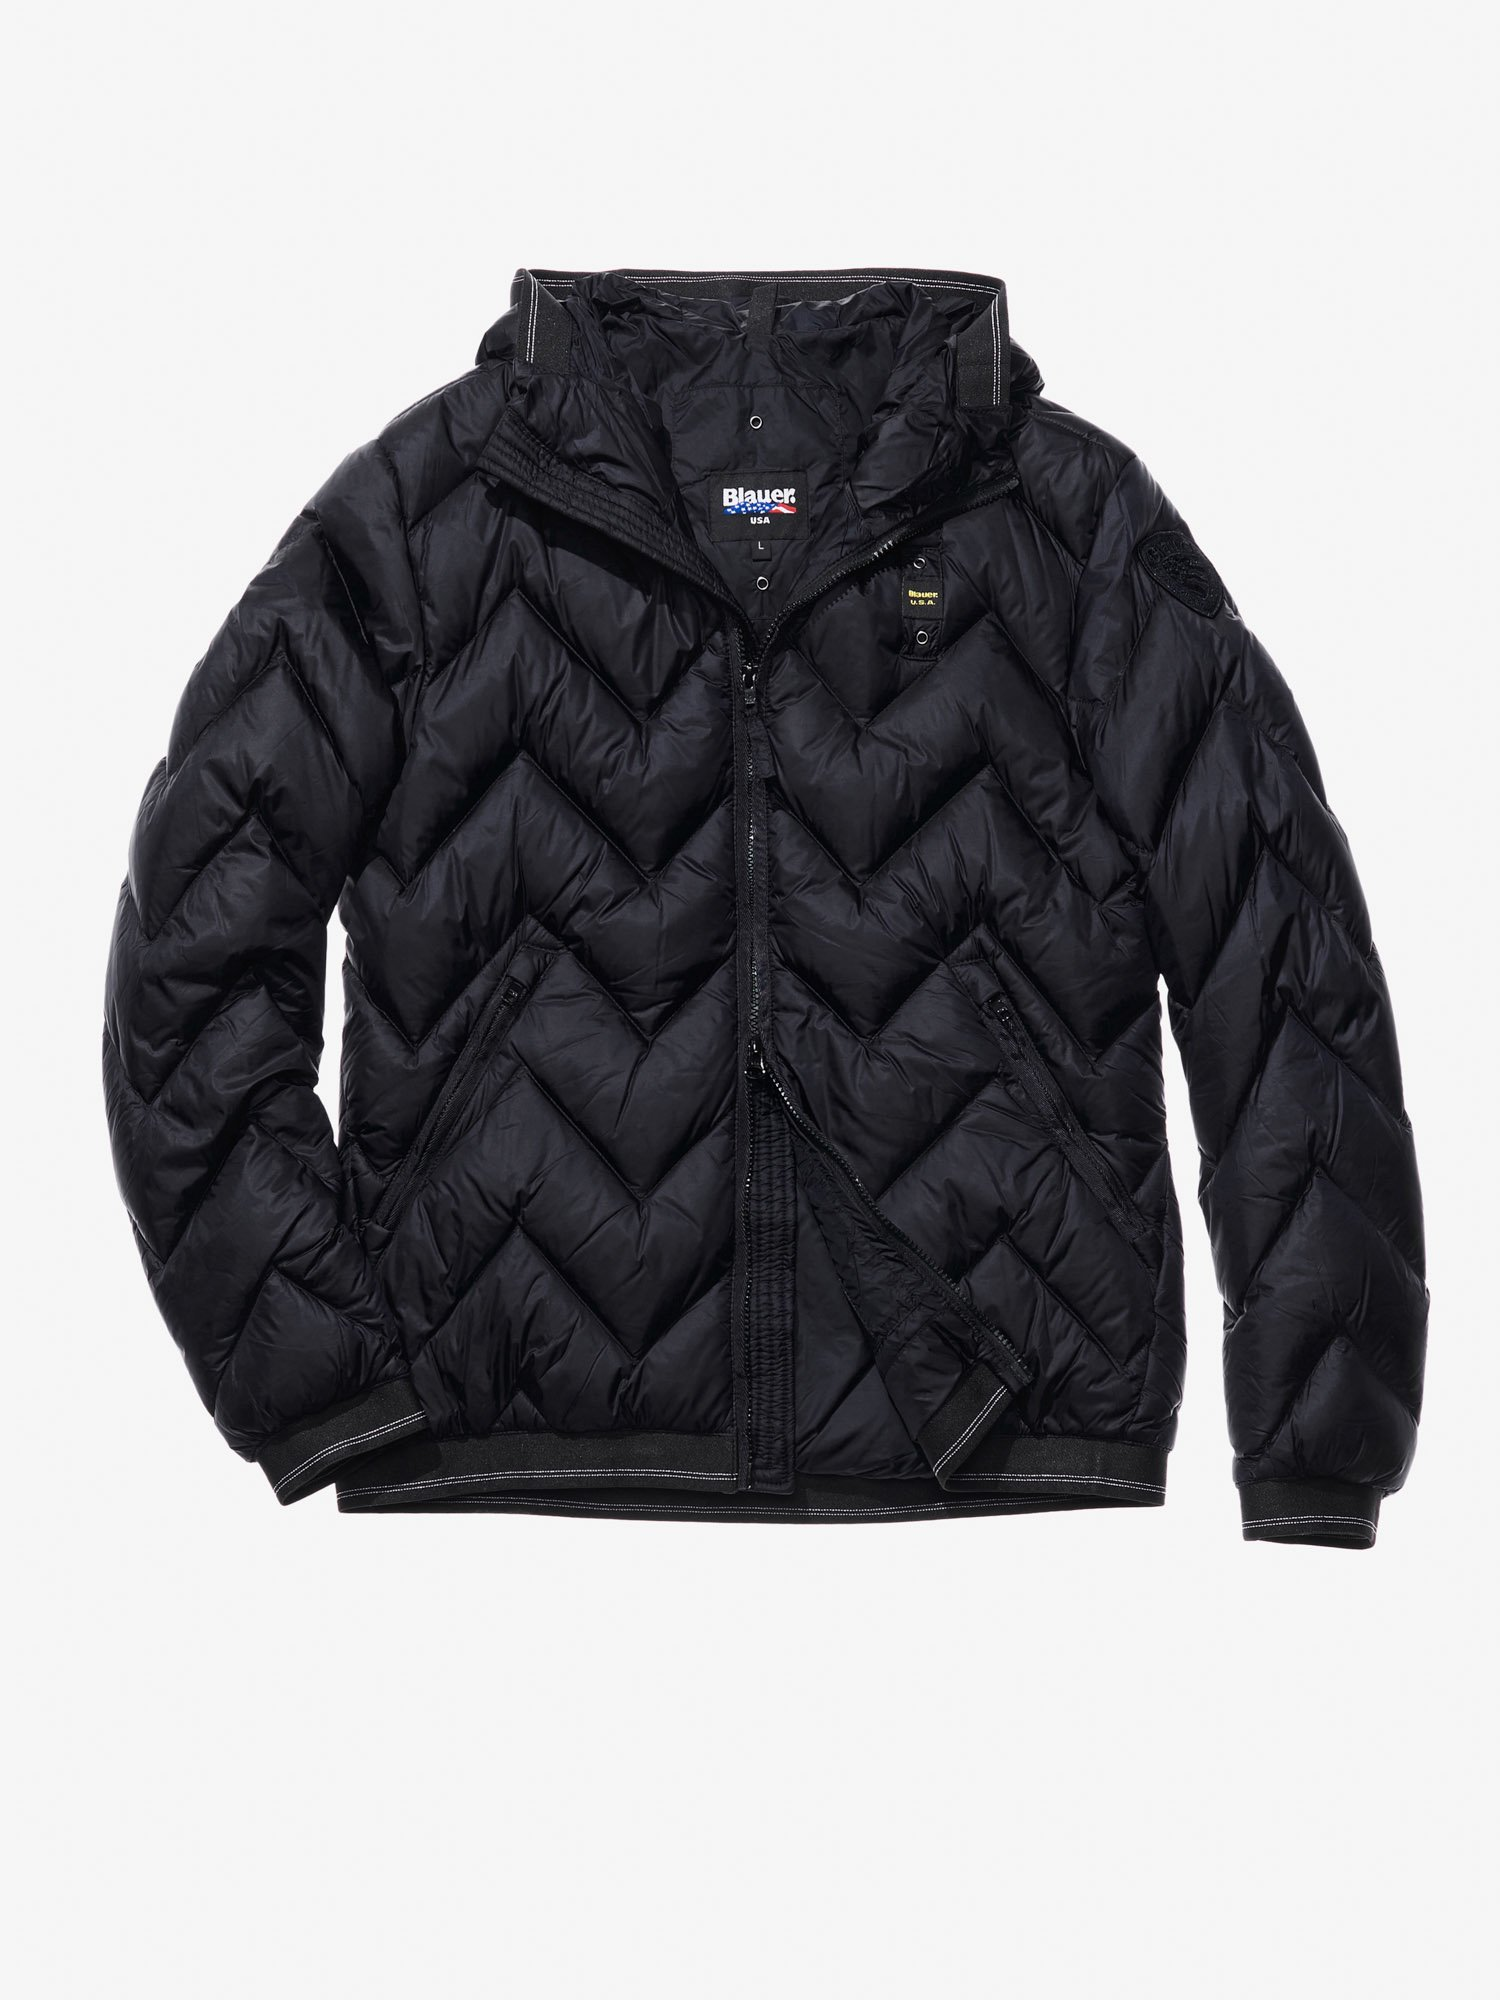 Blauer - JACOPO ZIG ZAG-QUILTED MILITARY-STYLE DOWN JACKET - Black - Blauer